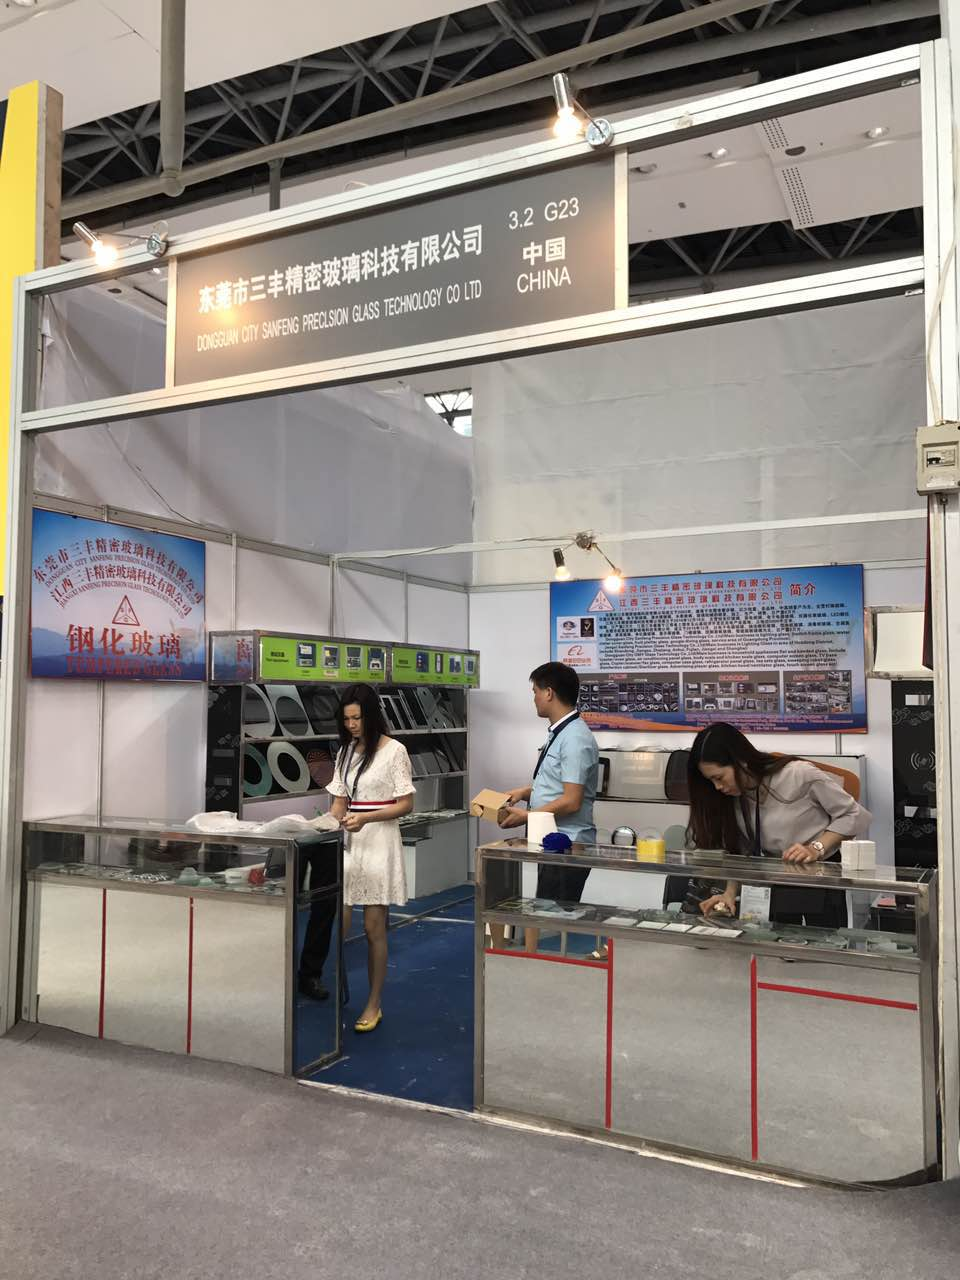 The twenty-second Guangzhou International Lighting Exhibition